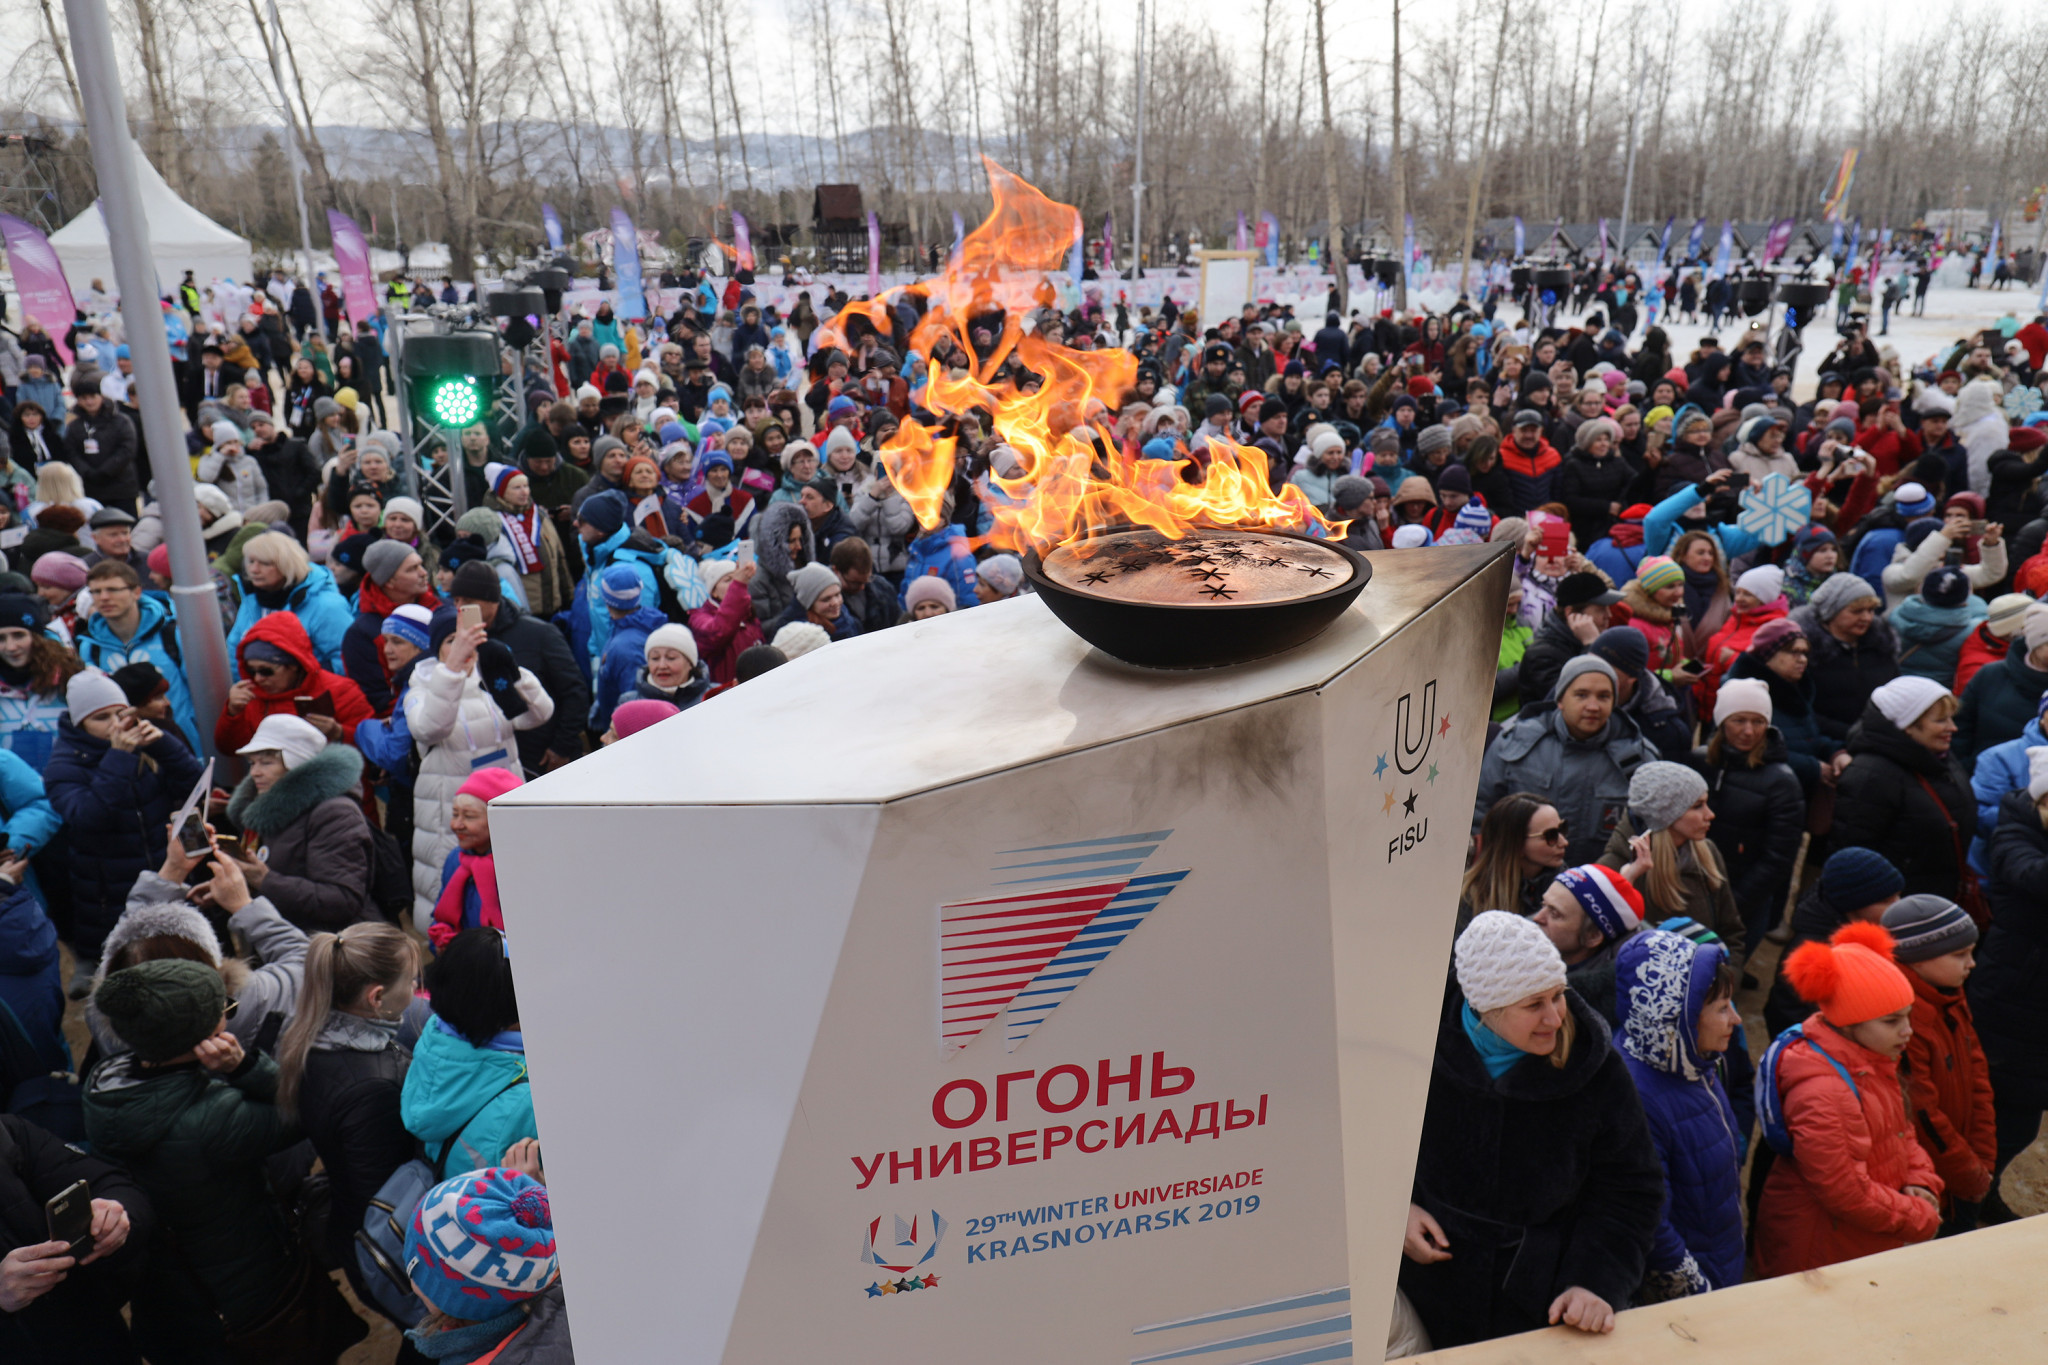 Krasnoyarsk 2019: Build-up to Opening Ceremony of 29th Winter Universiade